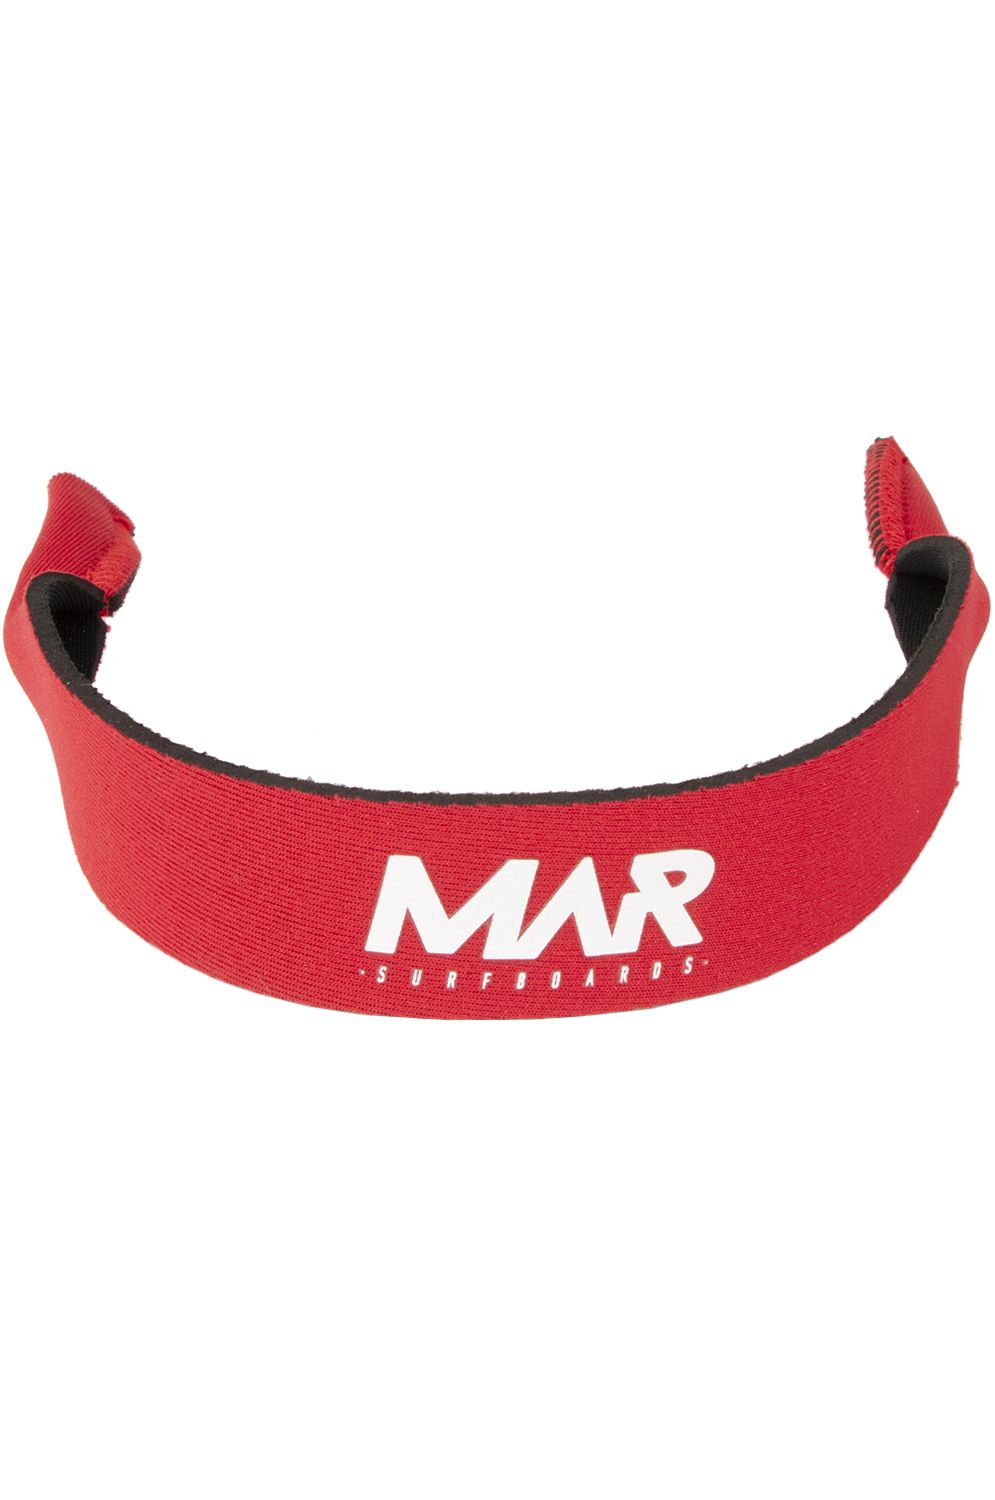 Fita Mar SUNGLASS HOLDER Red